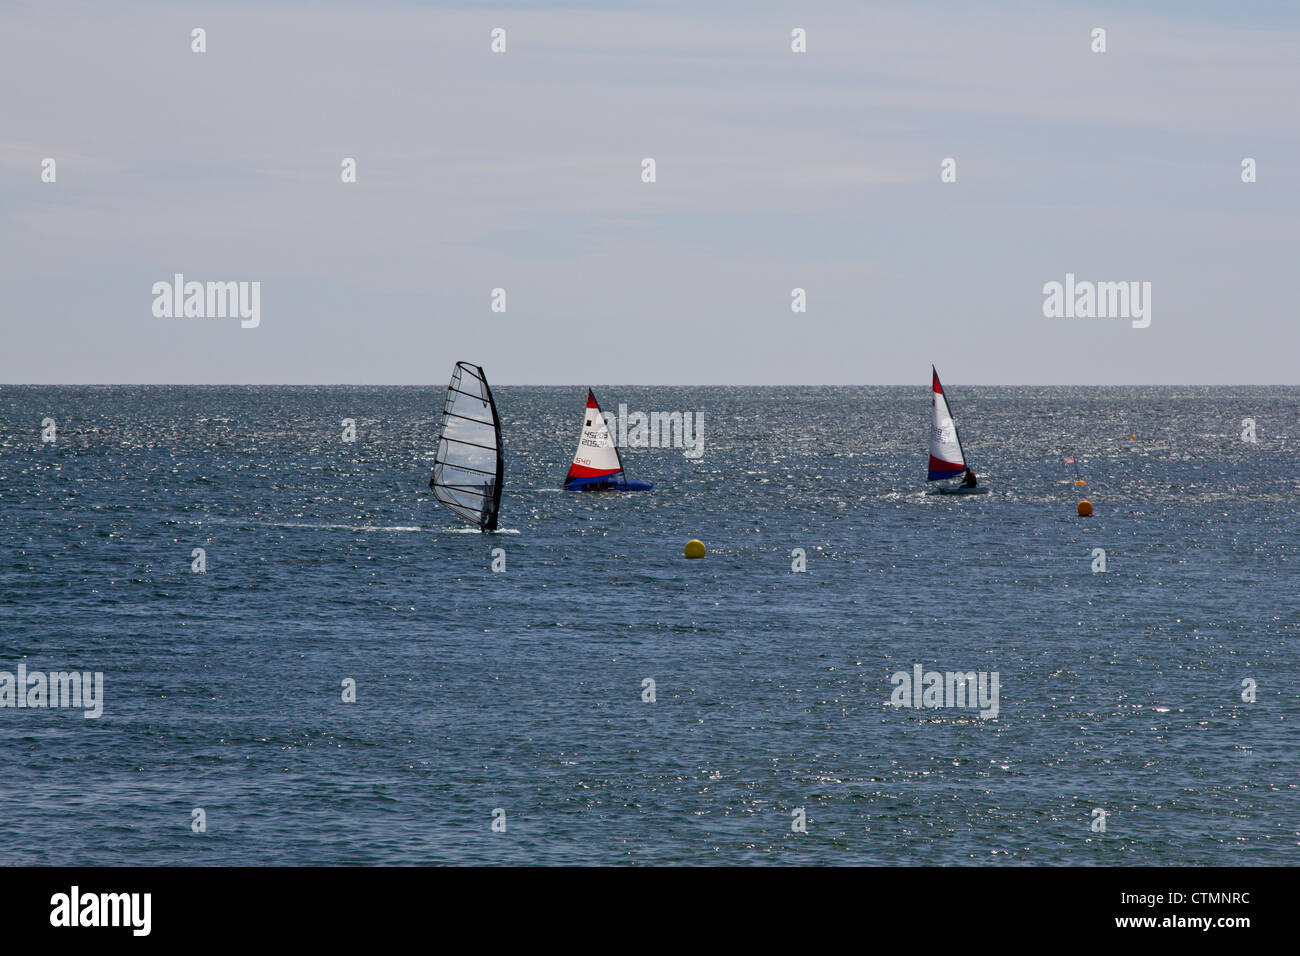 Sailboarding on a shimmering sea at Aberdyfi, north Wales - Stock Image